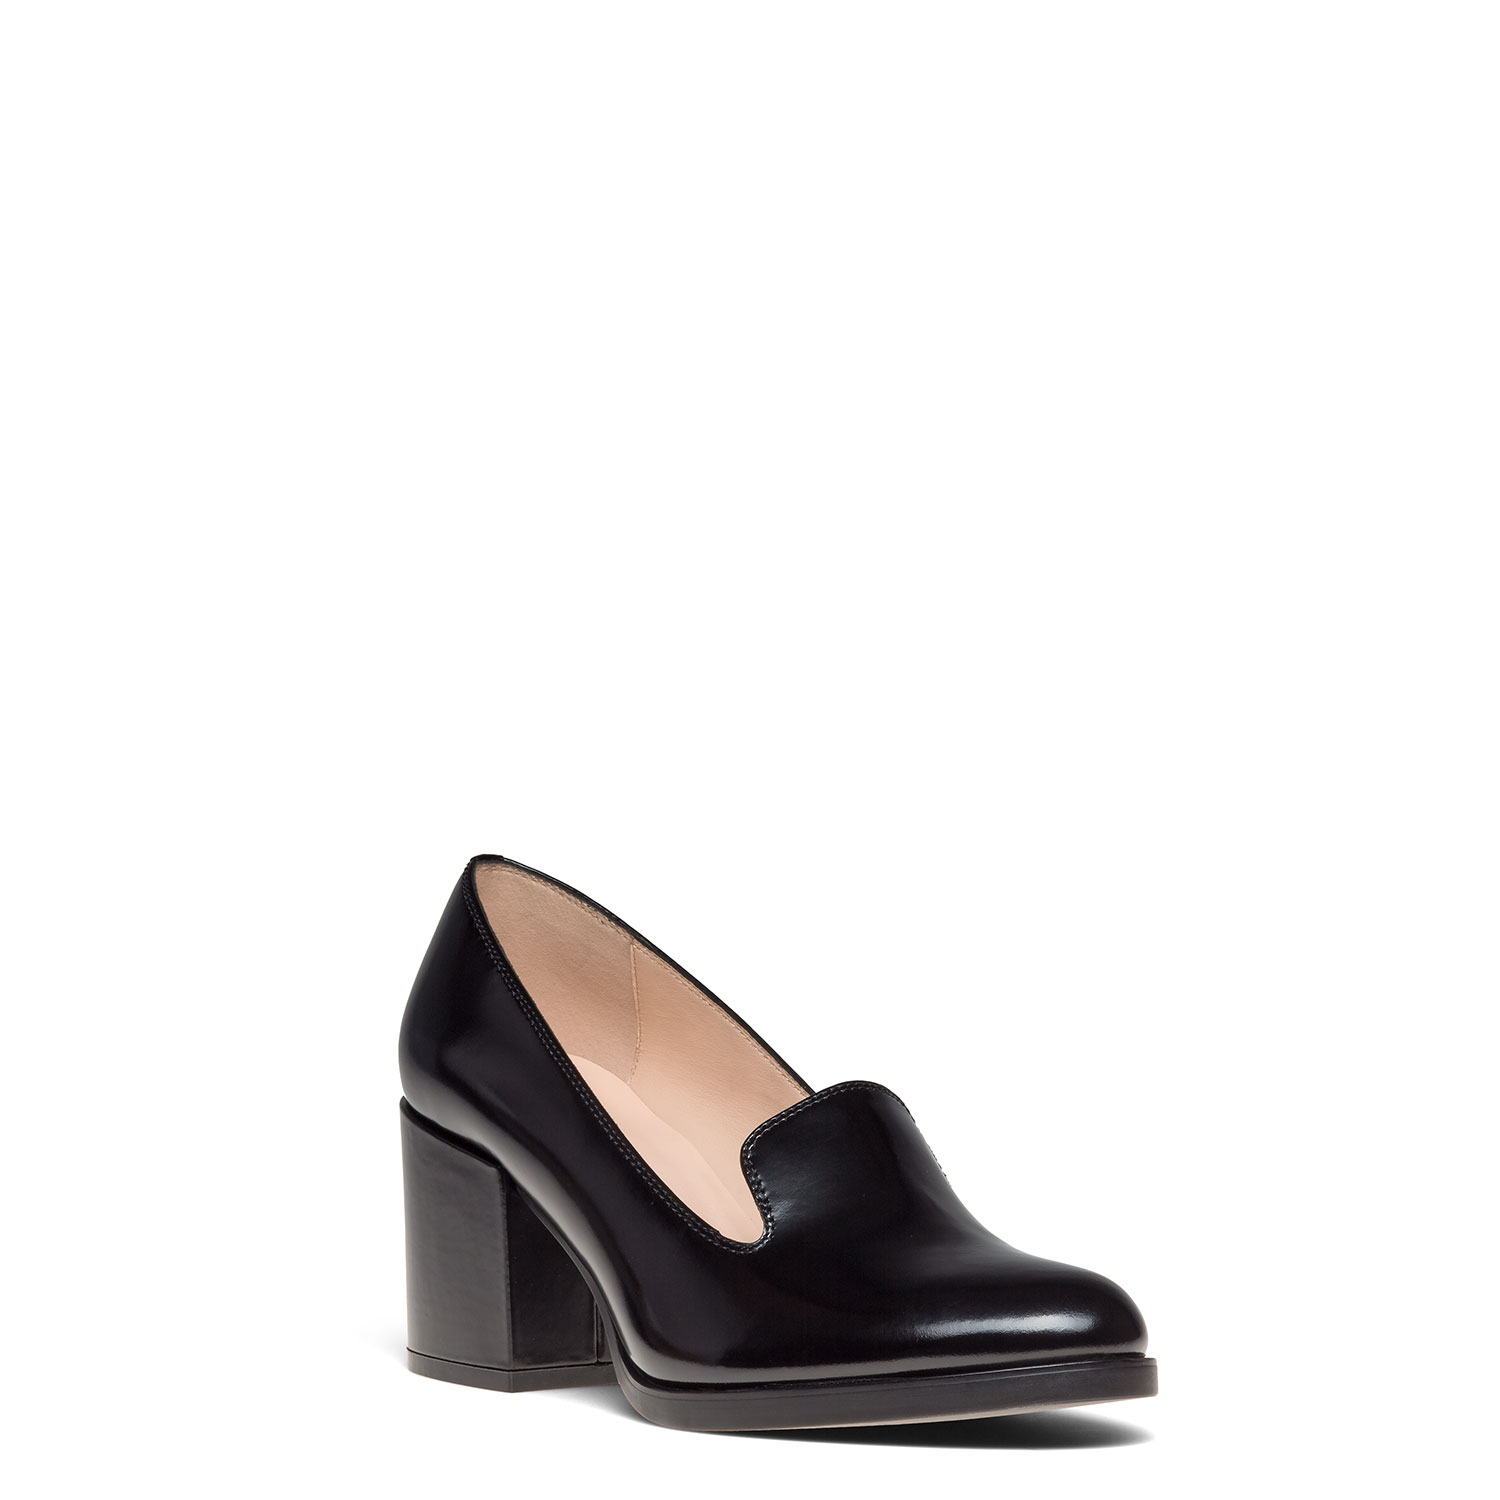 Women's shoes CARLO PAZOLINI FL-GRW1-1